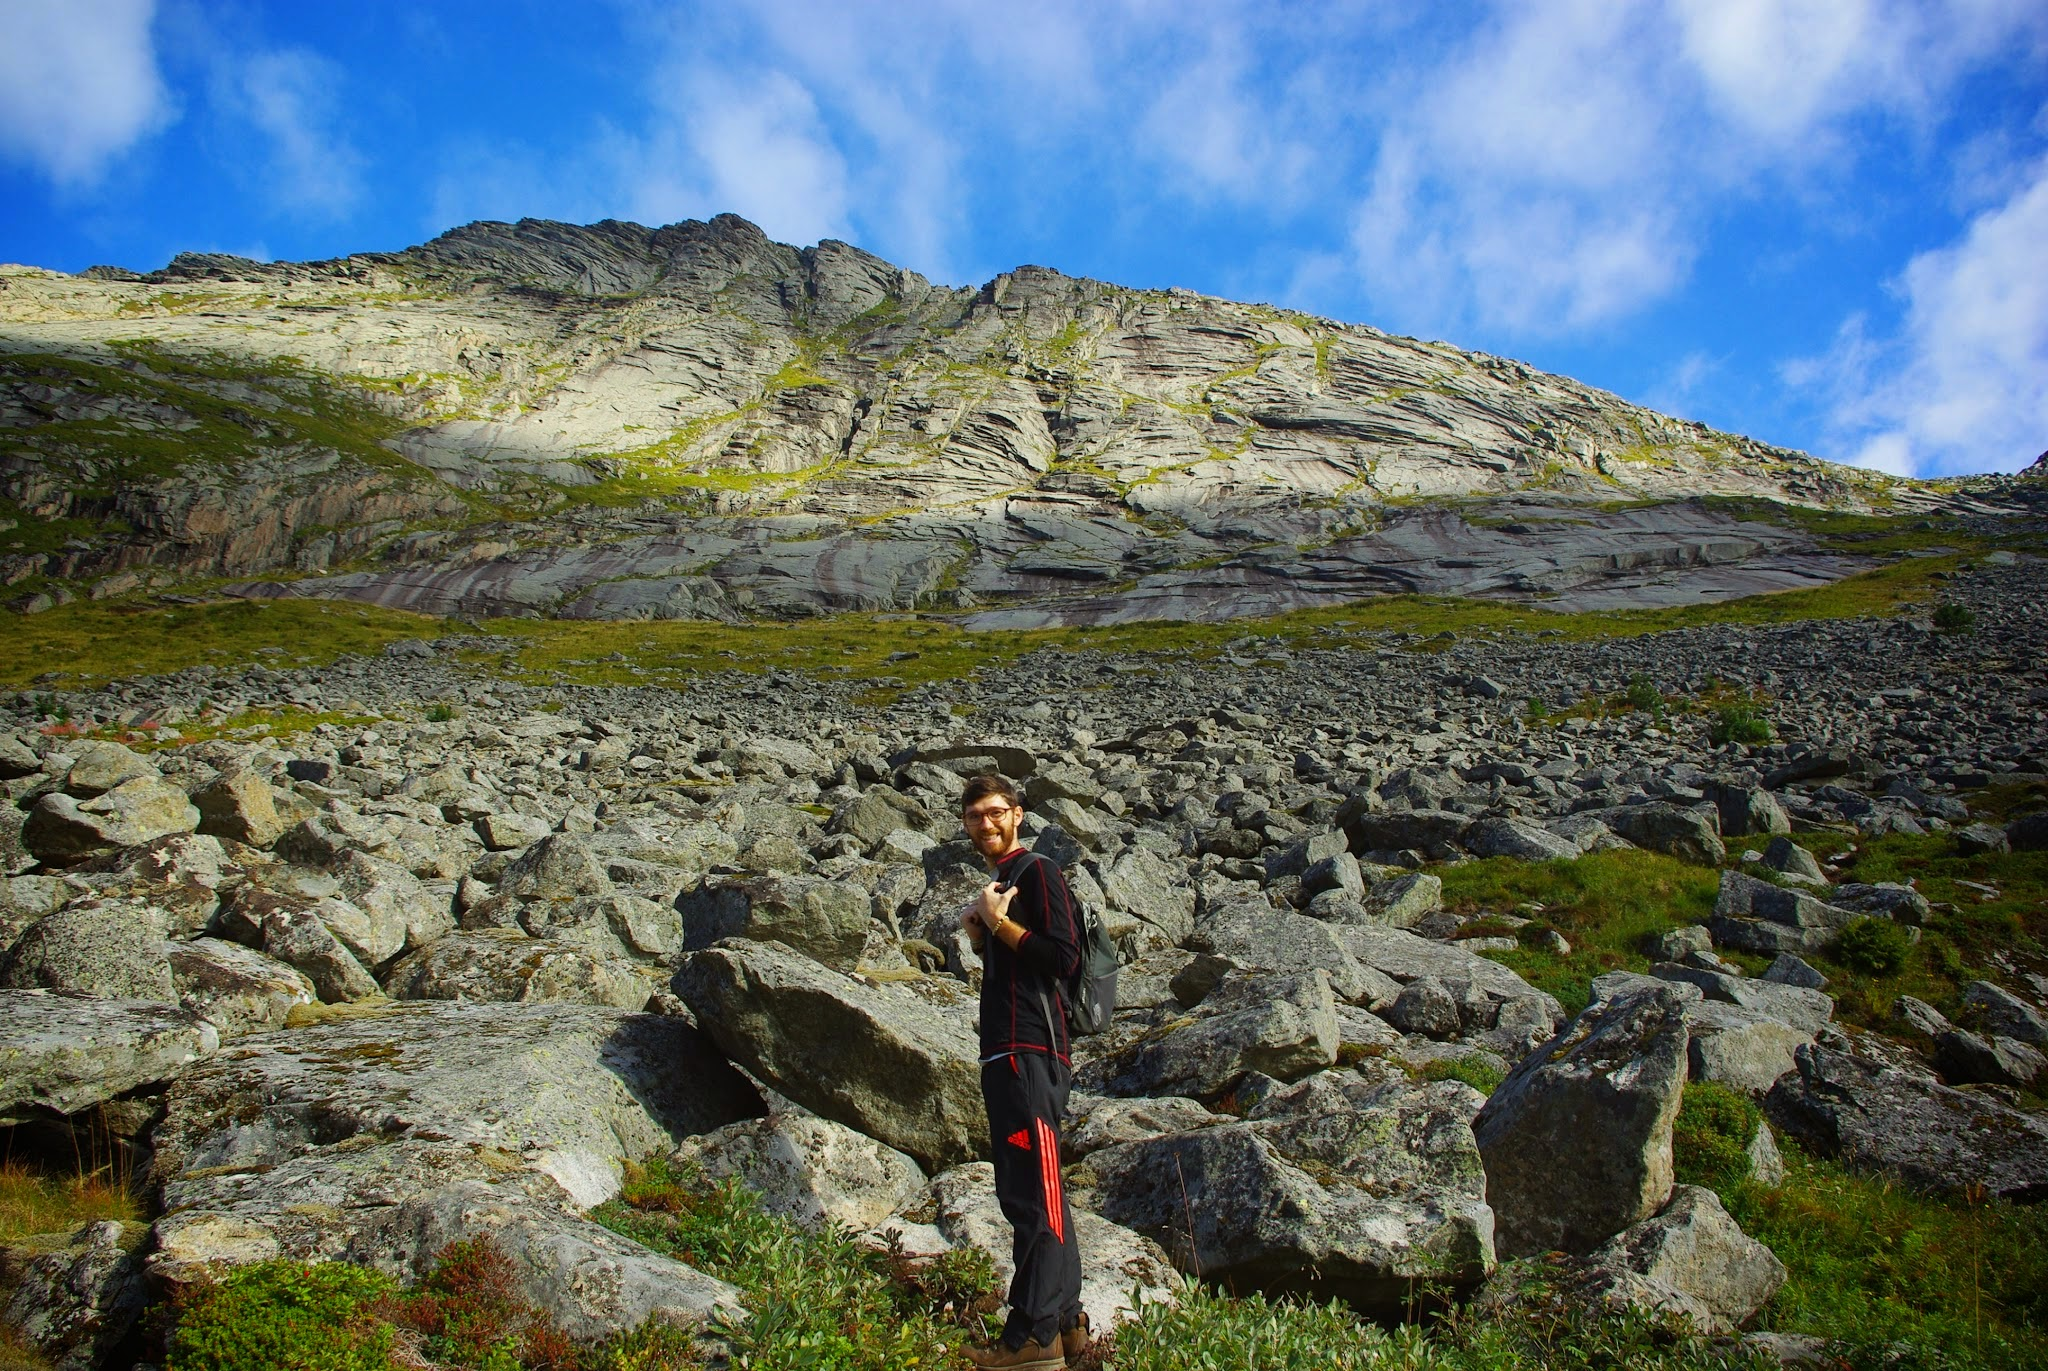 Early on in the Helvetsetind hike, there's a scree field to scramble across.